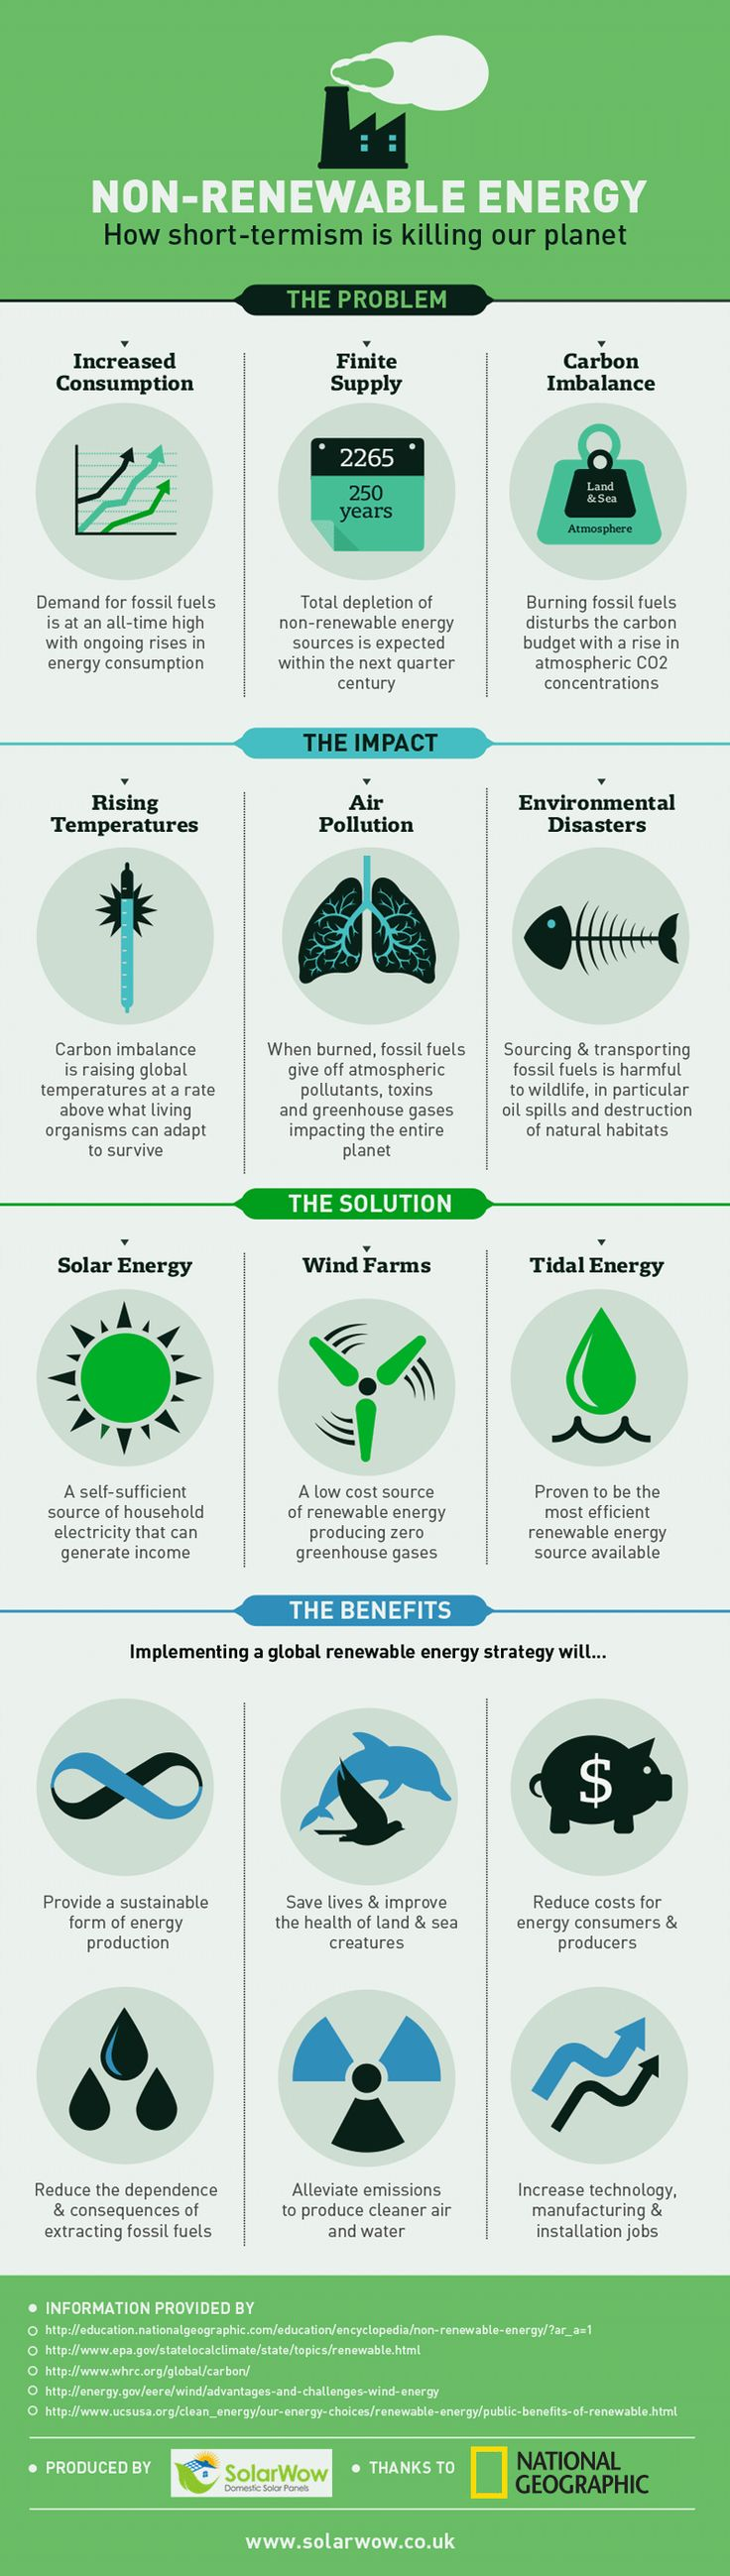 Fossil fuels currently drive around 90% of energy production levels. Latest figures suggest that our most plentiful resource, coal, has a maximum lifespan of 250 years, with oil and natural gas falling much shorter.  This infographic outlines how a dependence on fossil fuels is putting the long term future of our planet in jeopardy.